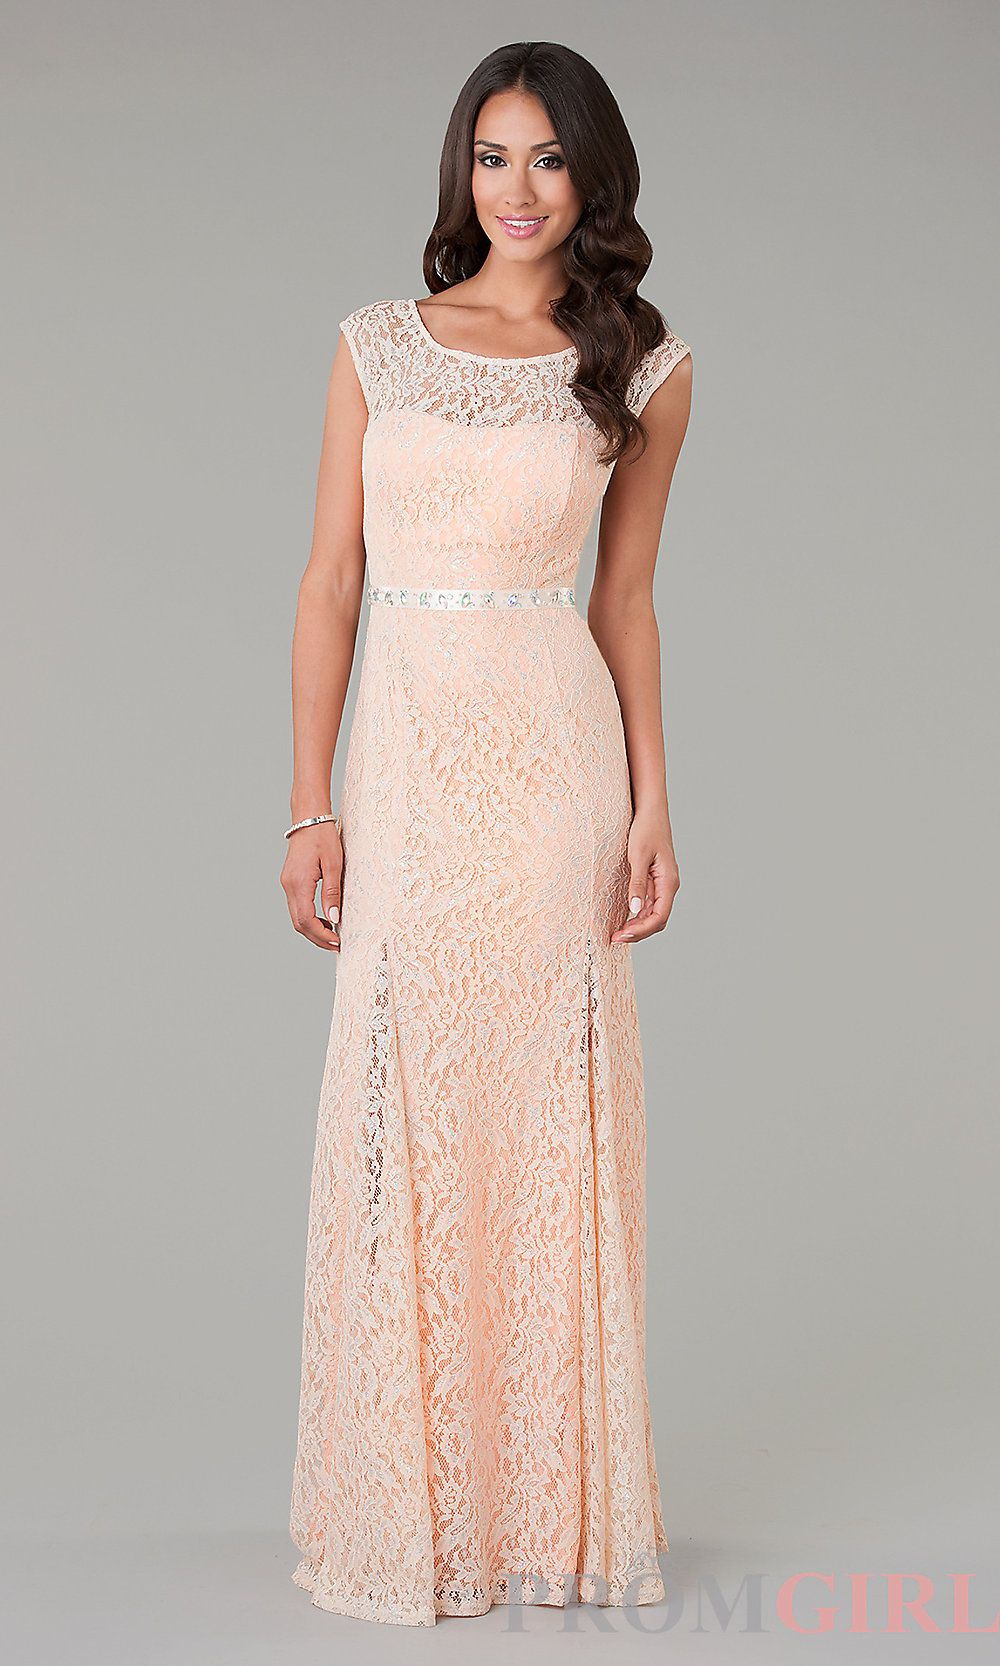 Long lace evening gowns lace trimmed prom dresses promgirl